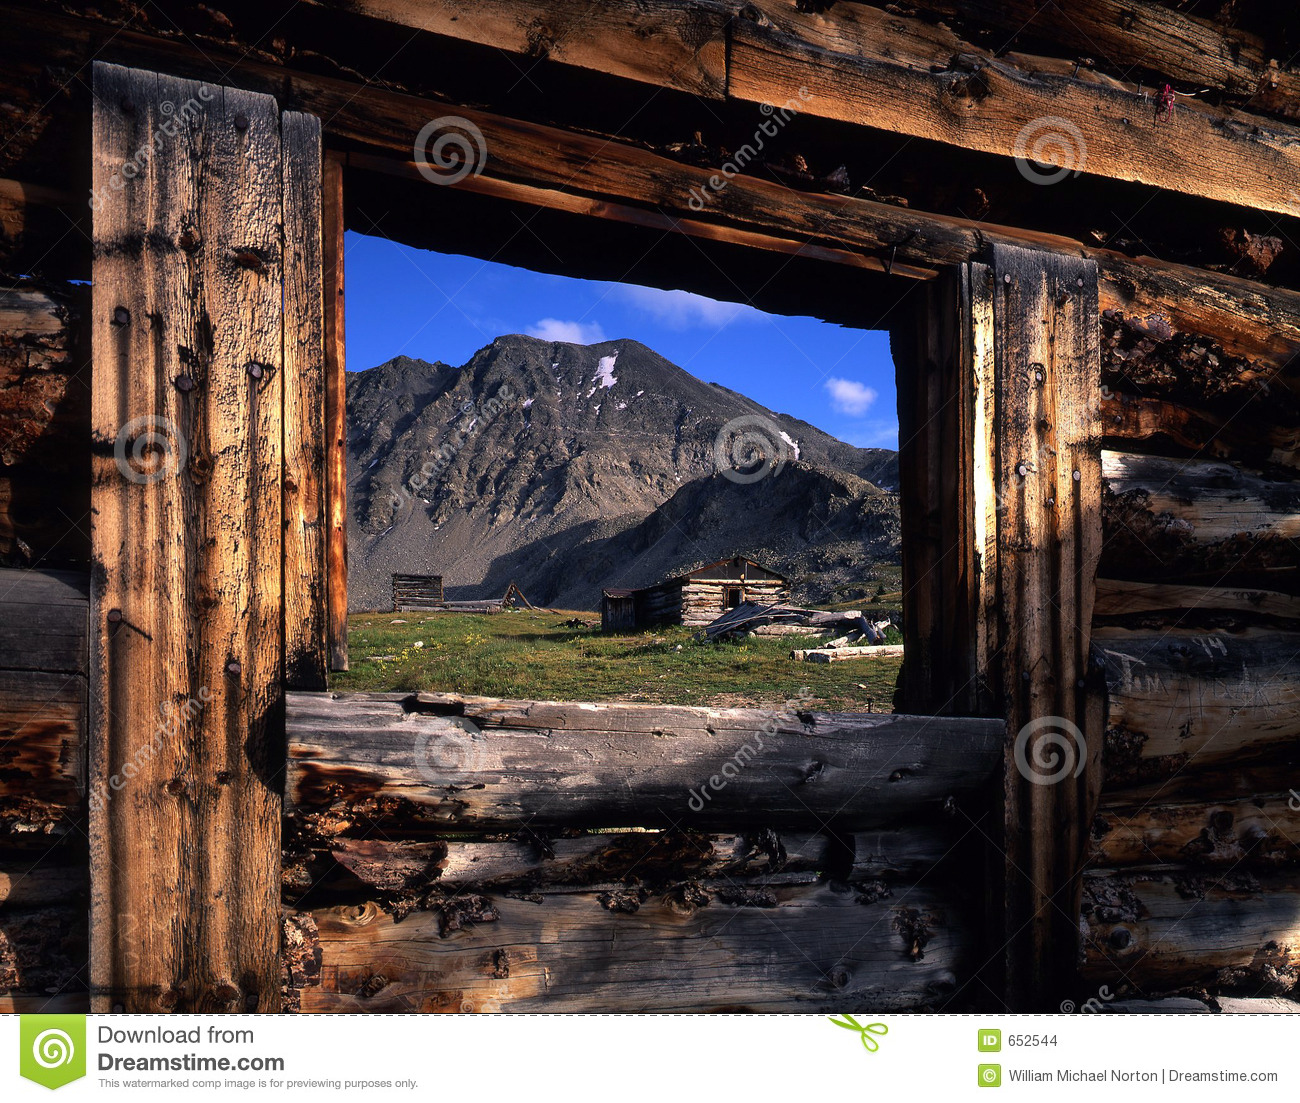 ... building with no roof located in Colorado's Arapaho National Forest